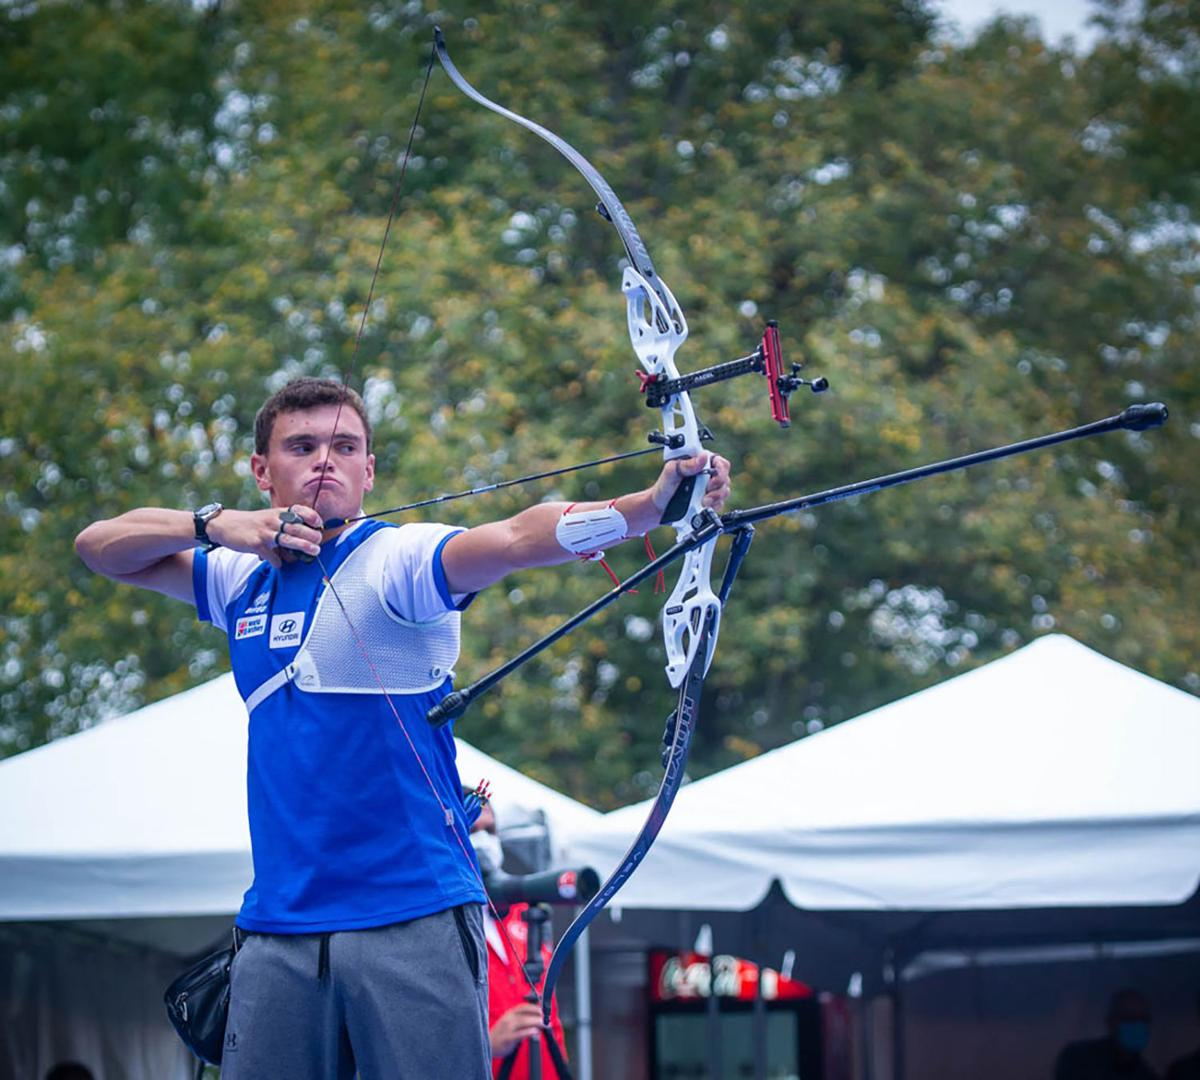 D'Amour at Archery World Cup Finals 2